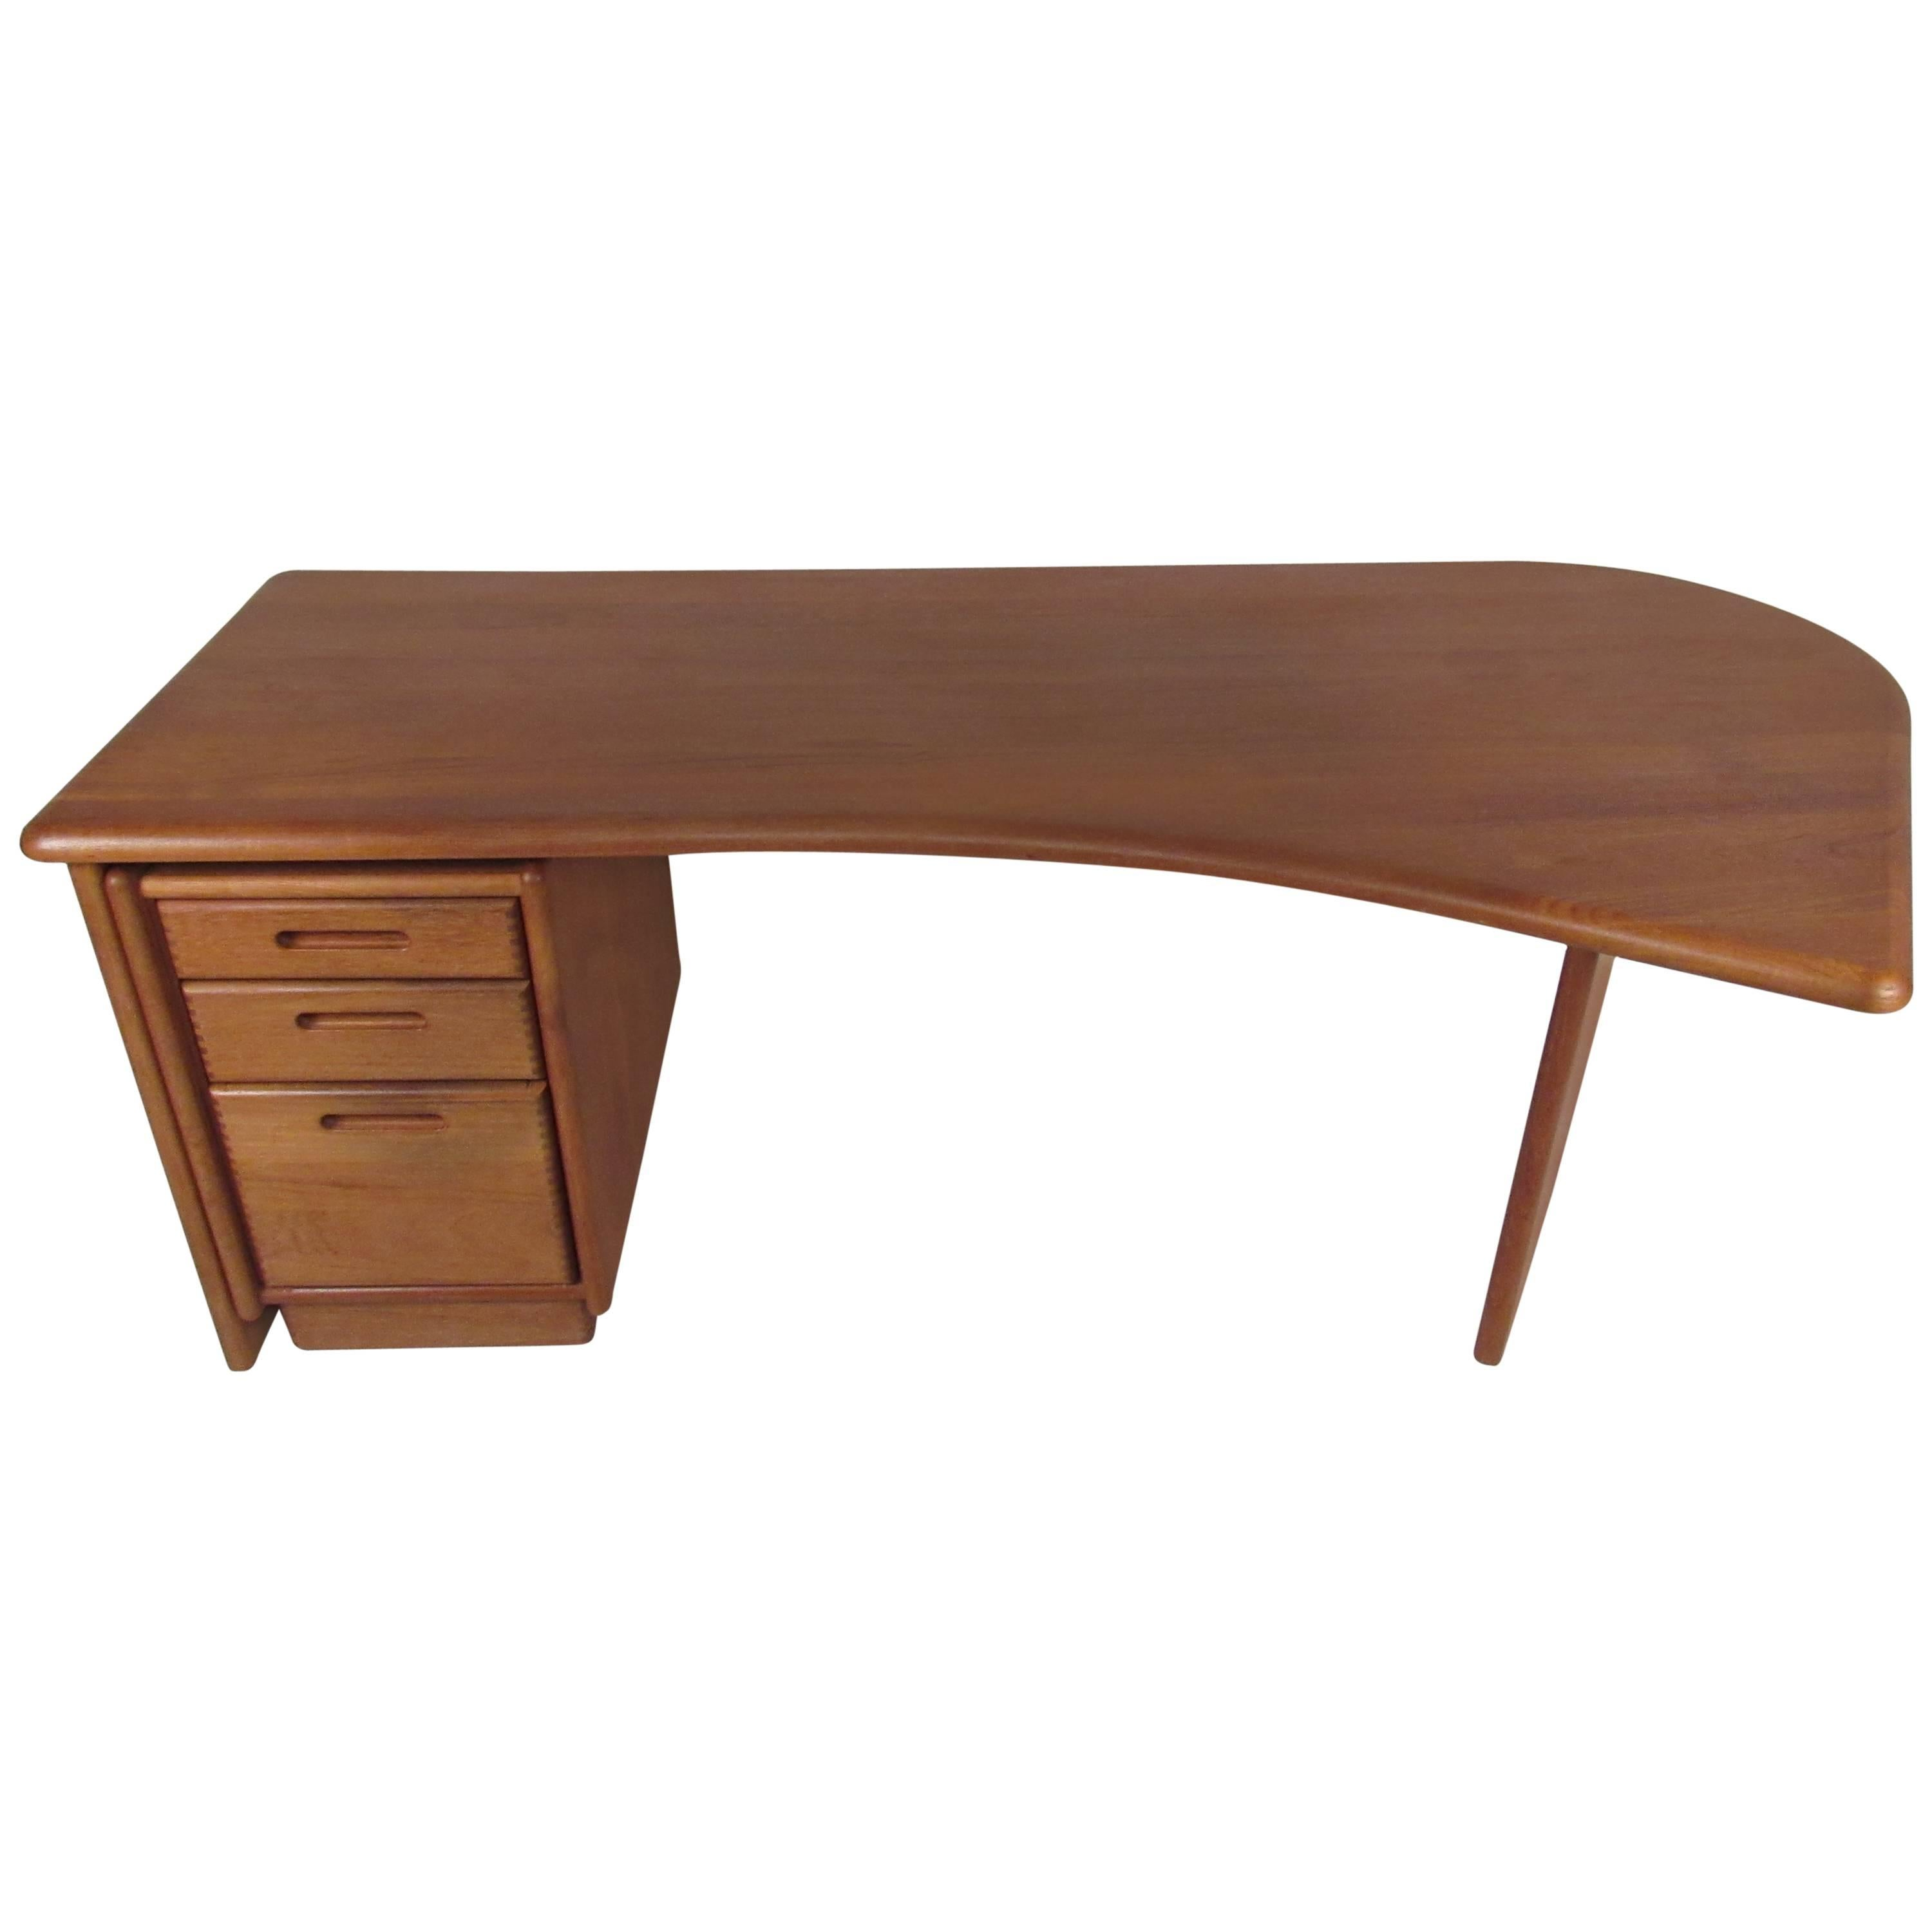 Impressive Danish Modern Executive Desk